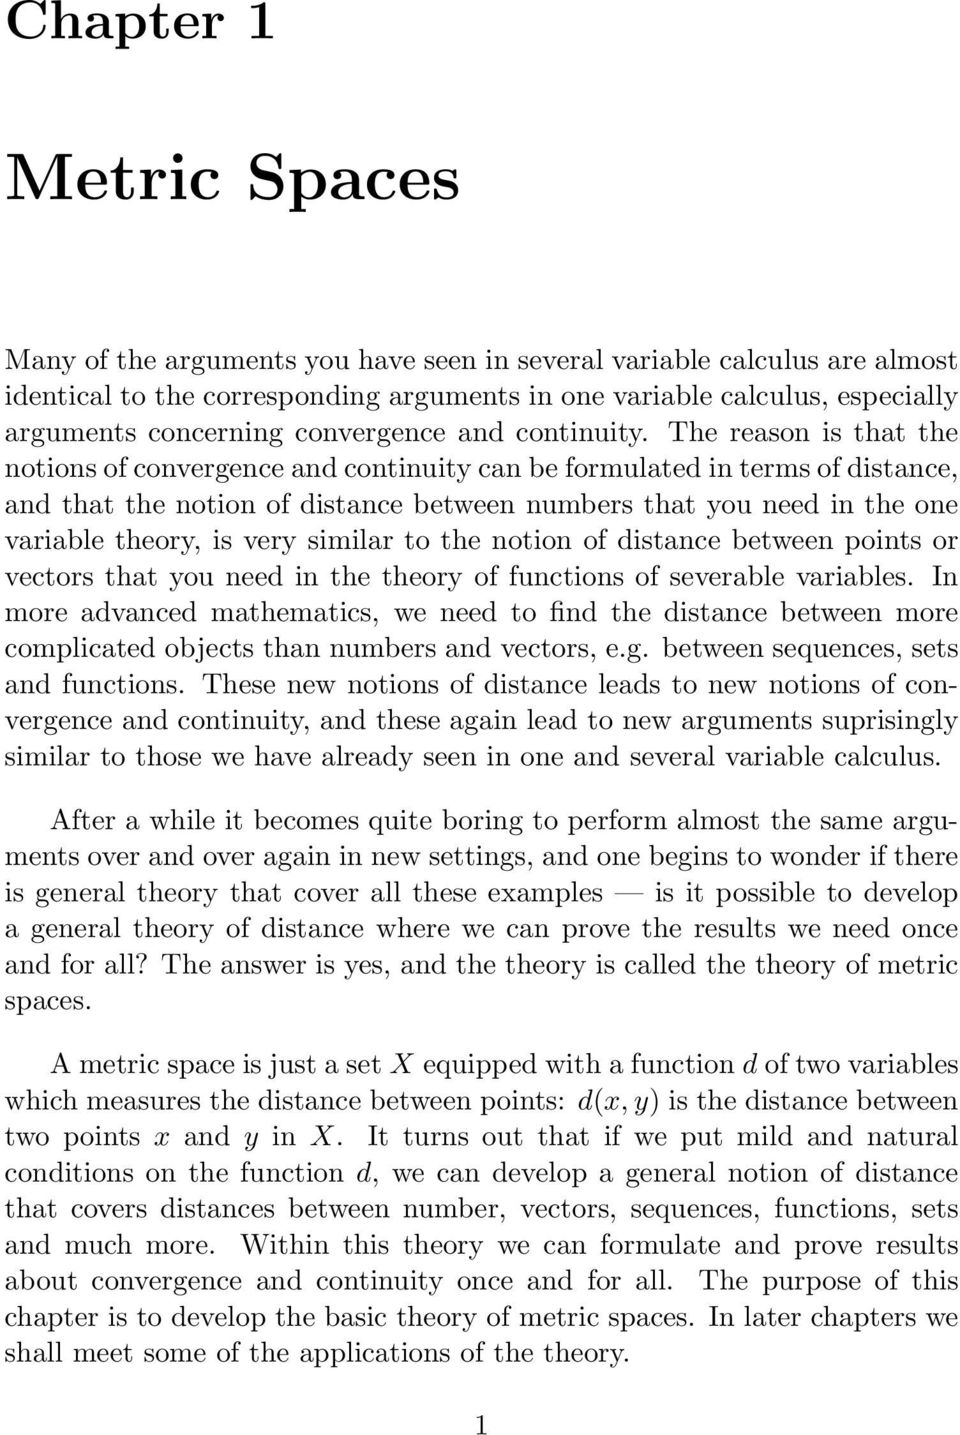 The reason is that the notions of convergence and continuity can be formulated in terms of distance, and that the notion of distance between numbers that you need in the one variable theory, is very